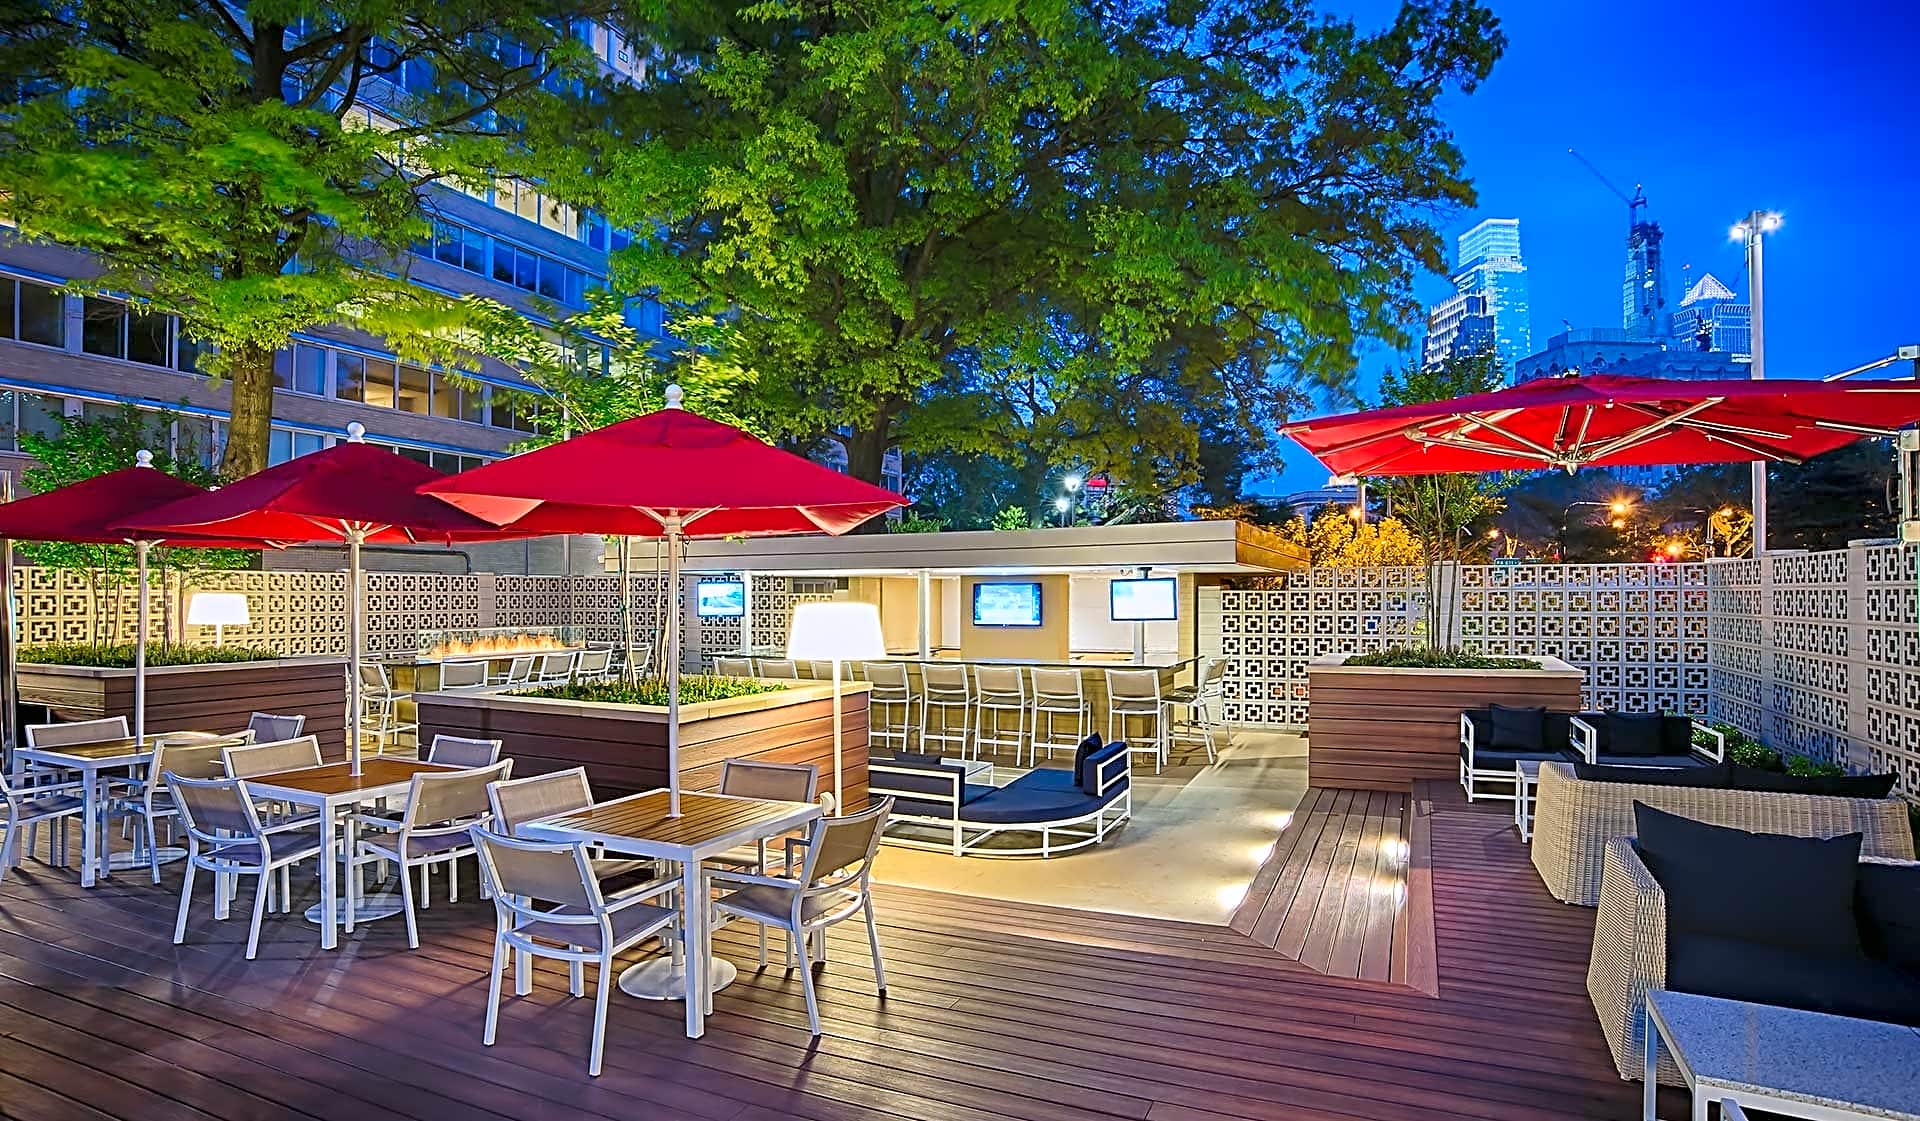 Meet up with friends at the Skyline Lounge with outdoor TV's, bar area, and fire pit